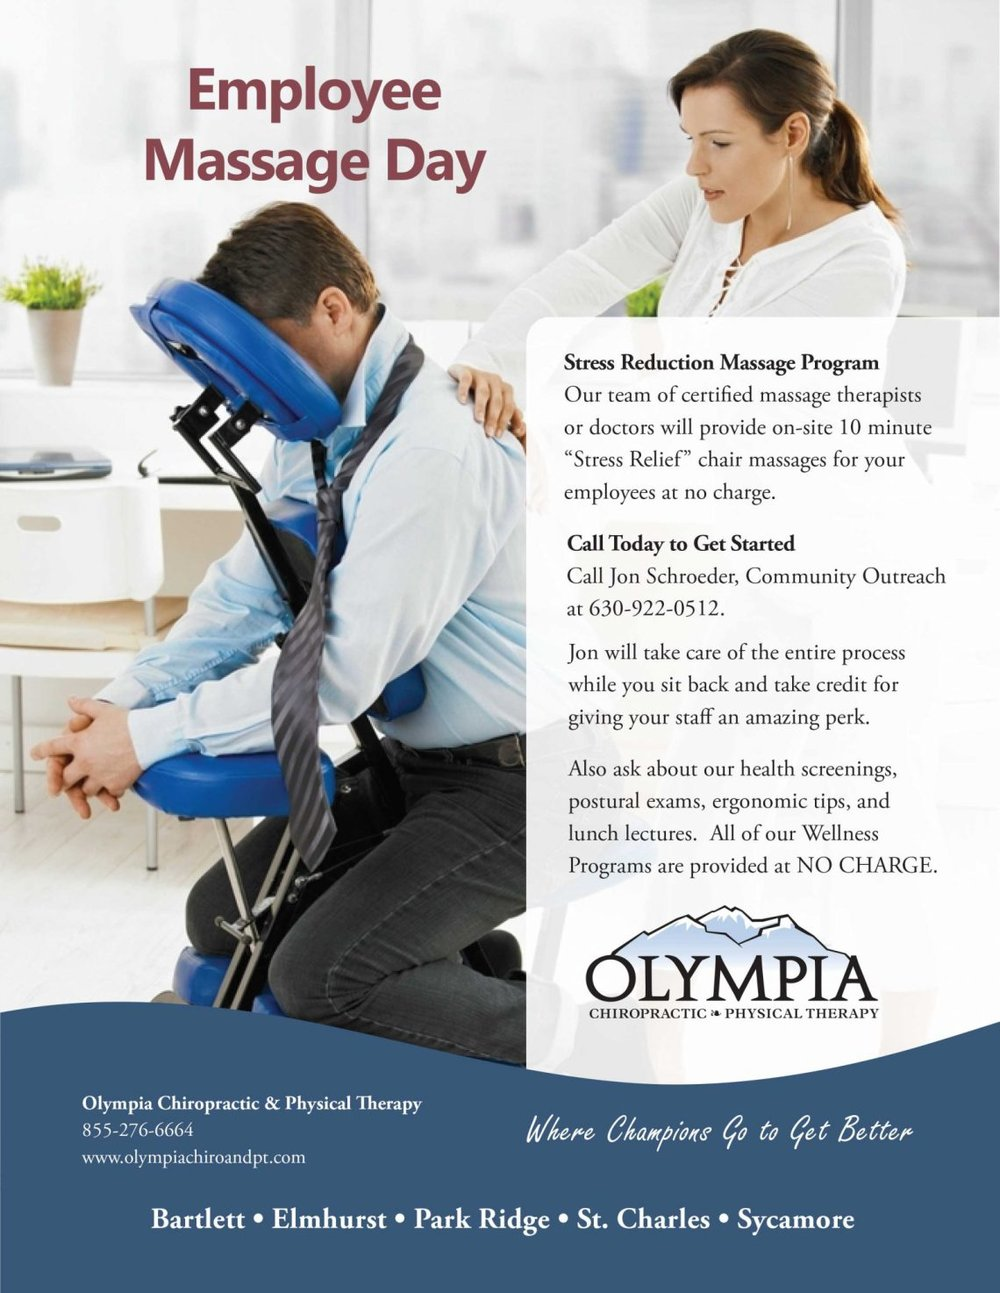 Olympia-Chiropractic-Physical-Therapy-Employee-Massage-Day.jpg